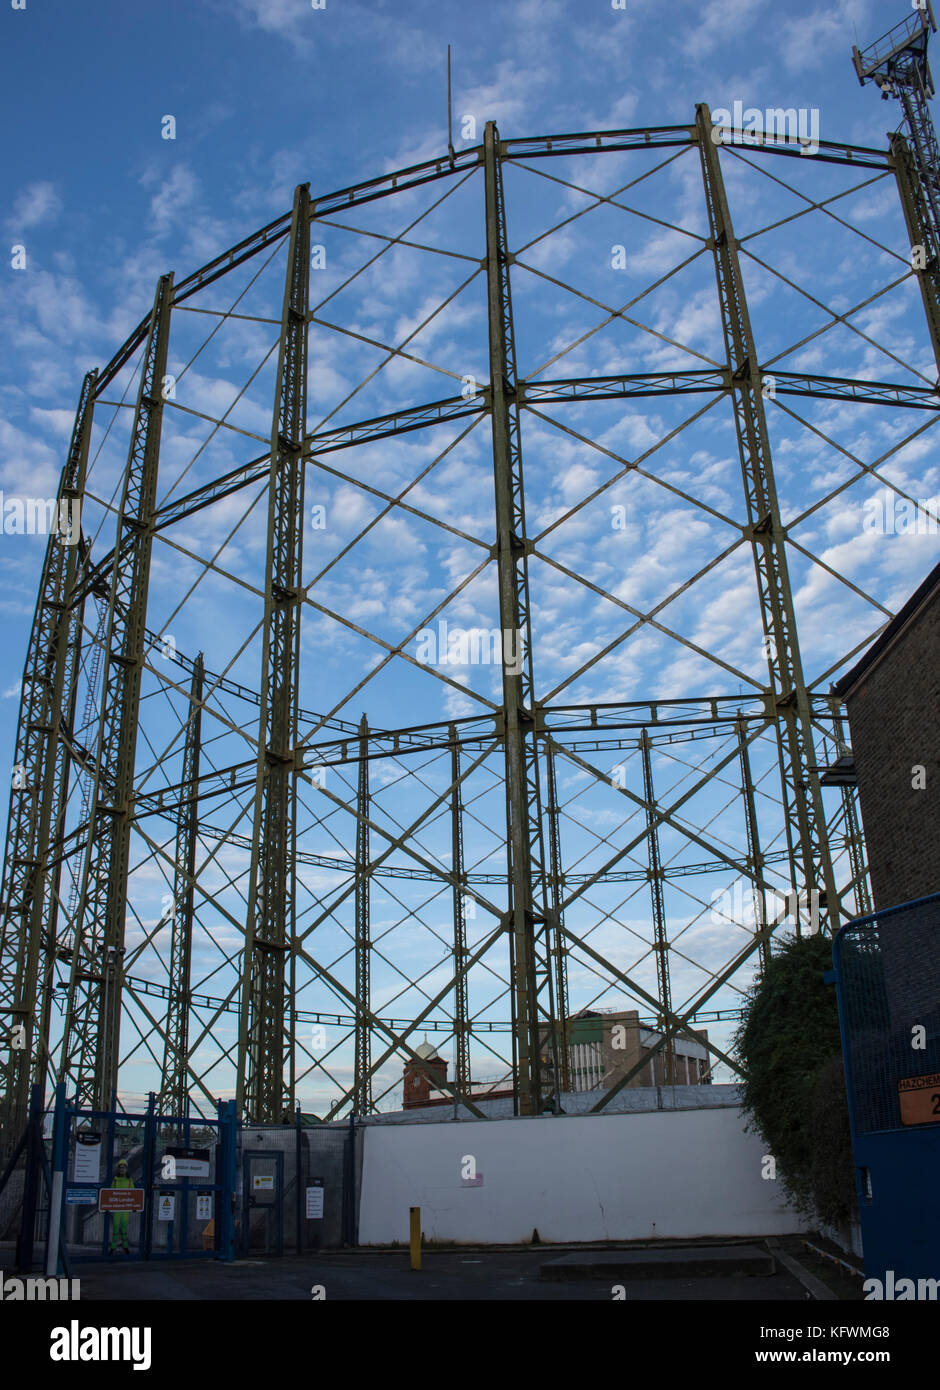 Gas works at Kennington Oval London England - Stock Image